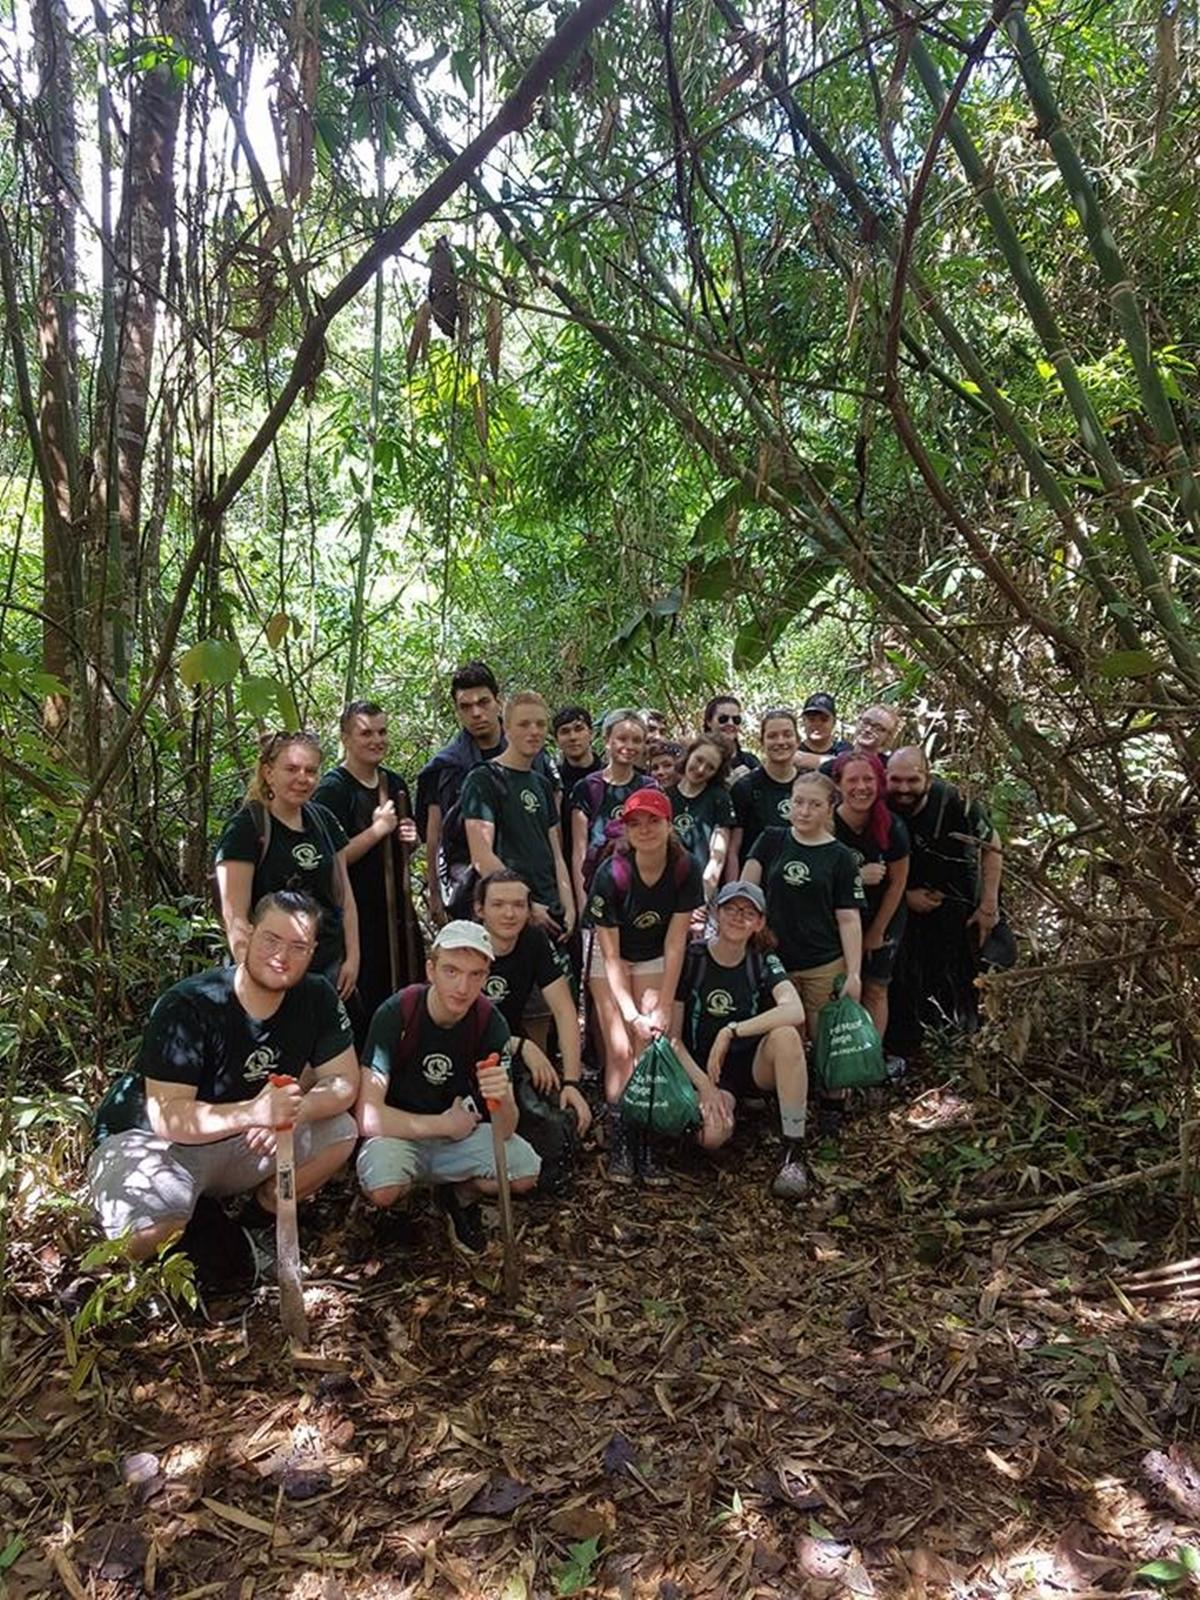 Cutting their way through thick vegetation, one of the groups pause for a photo